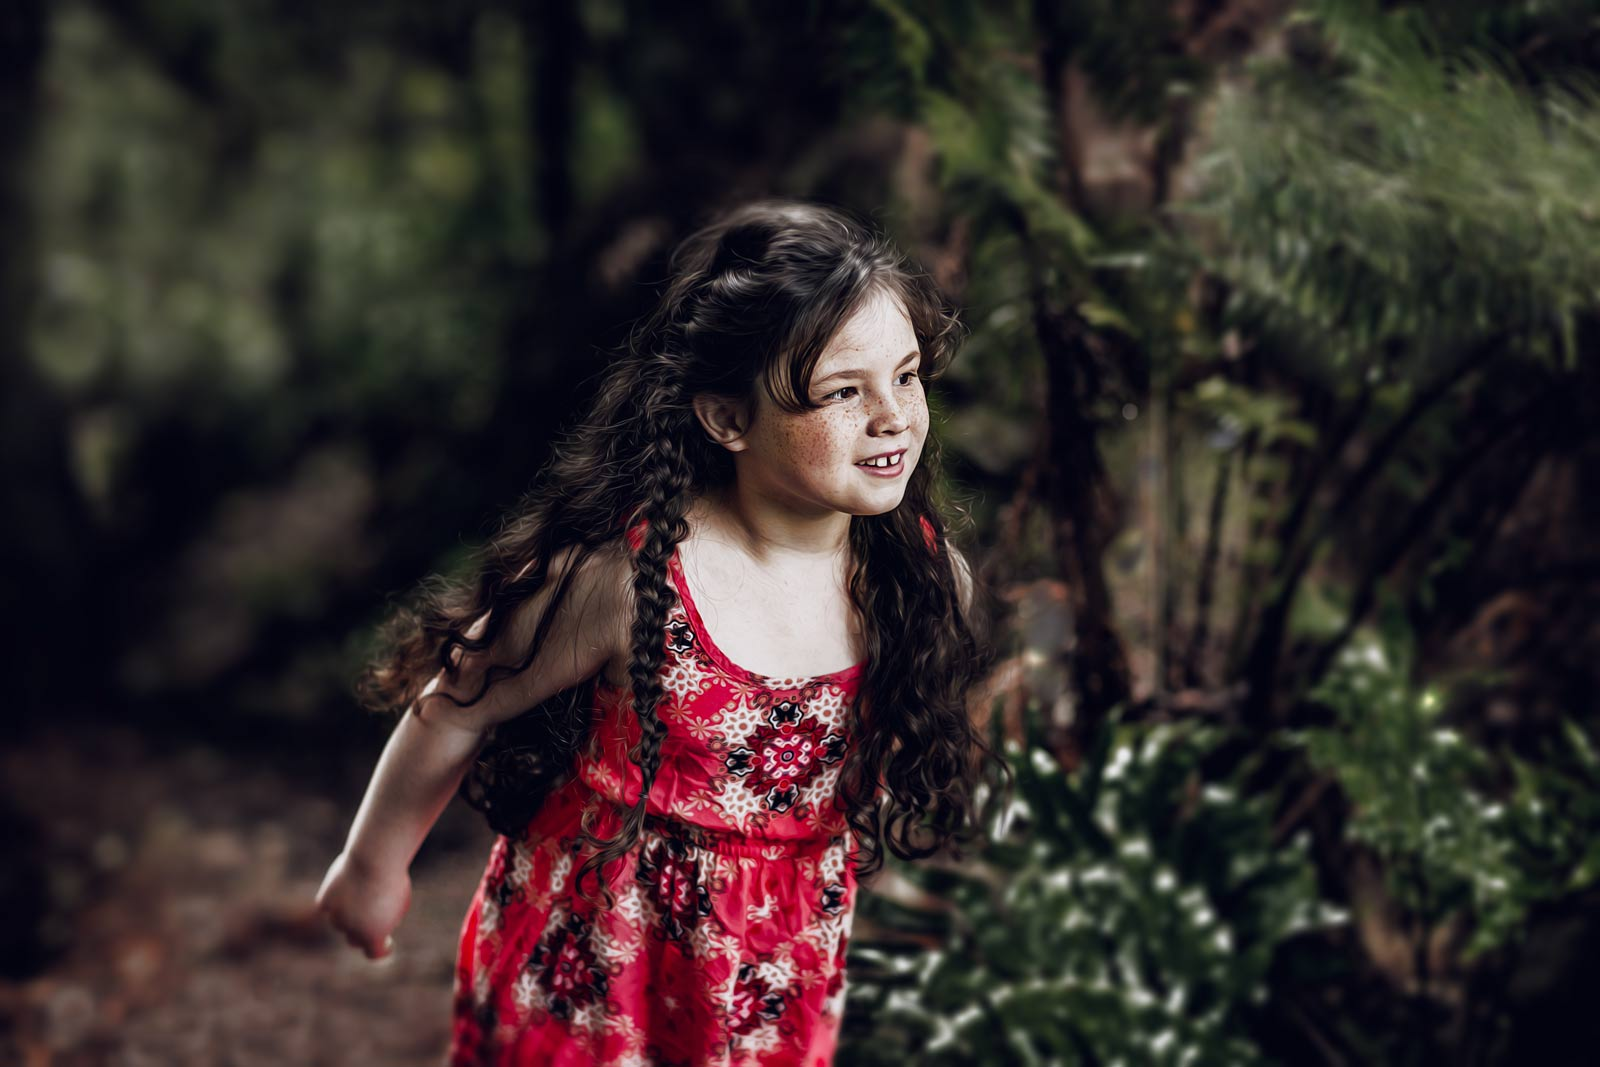 tween girl, long dark hair braided, red dress, in a forest looking curious